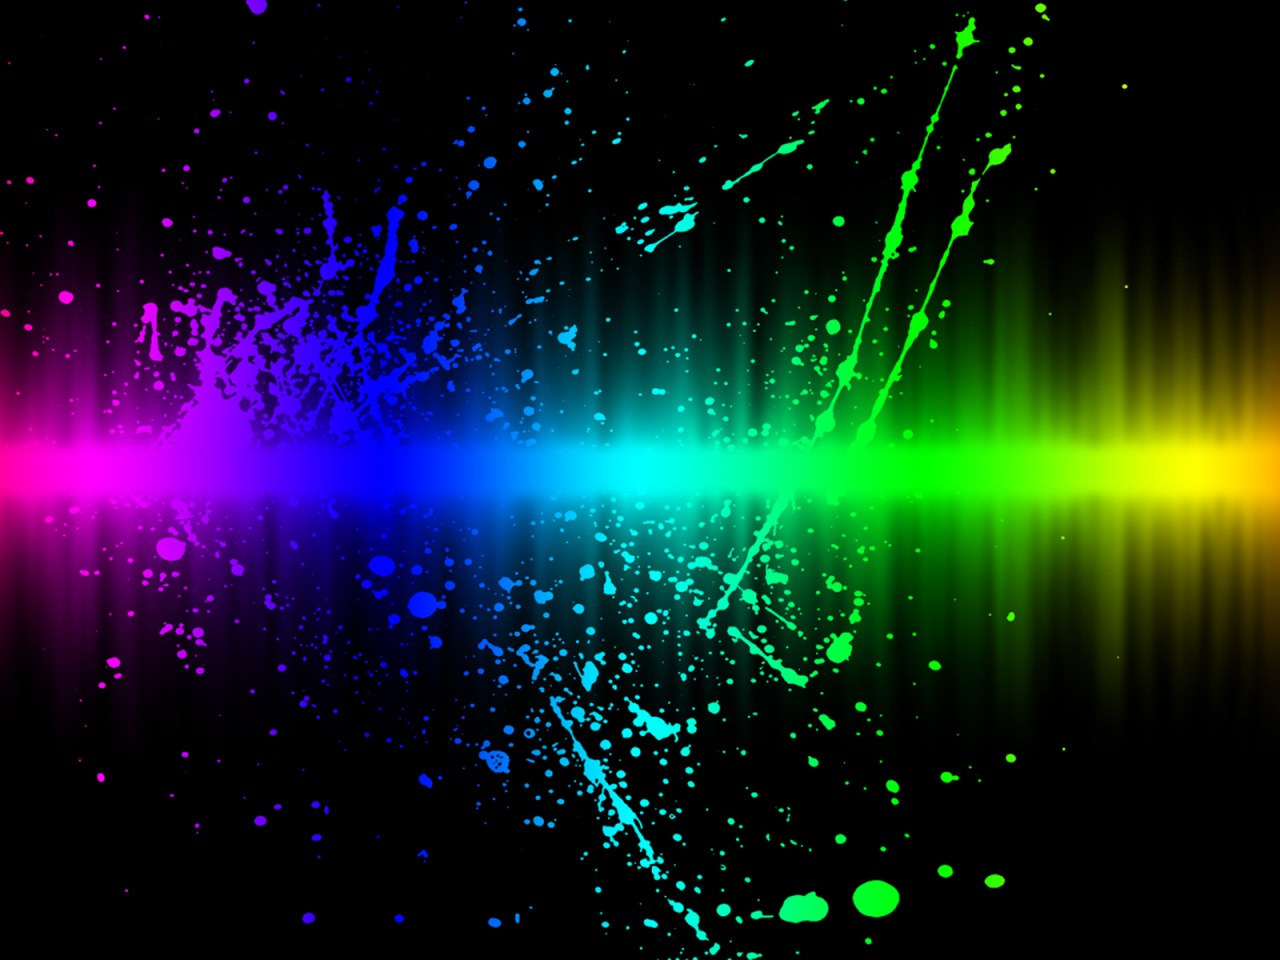 Free Colorful Colorful Free 3d Abstract Wallpaper Downloads Wallpaper